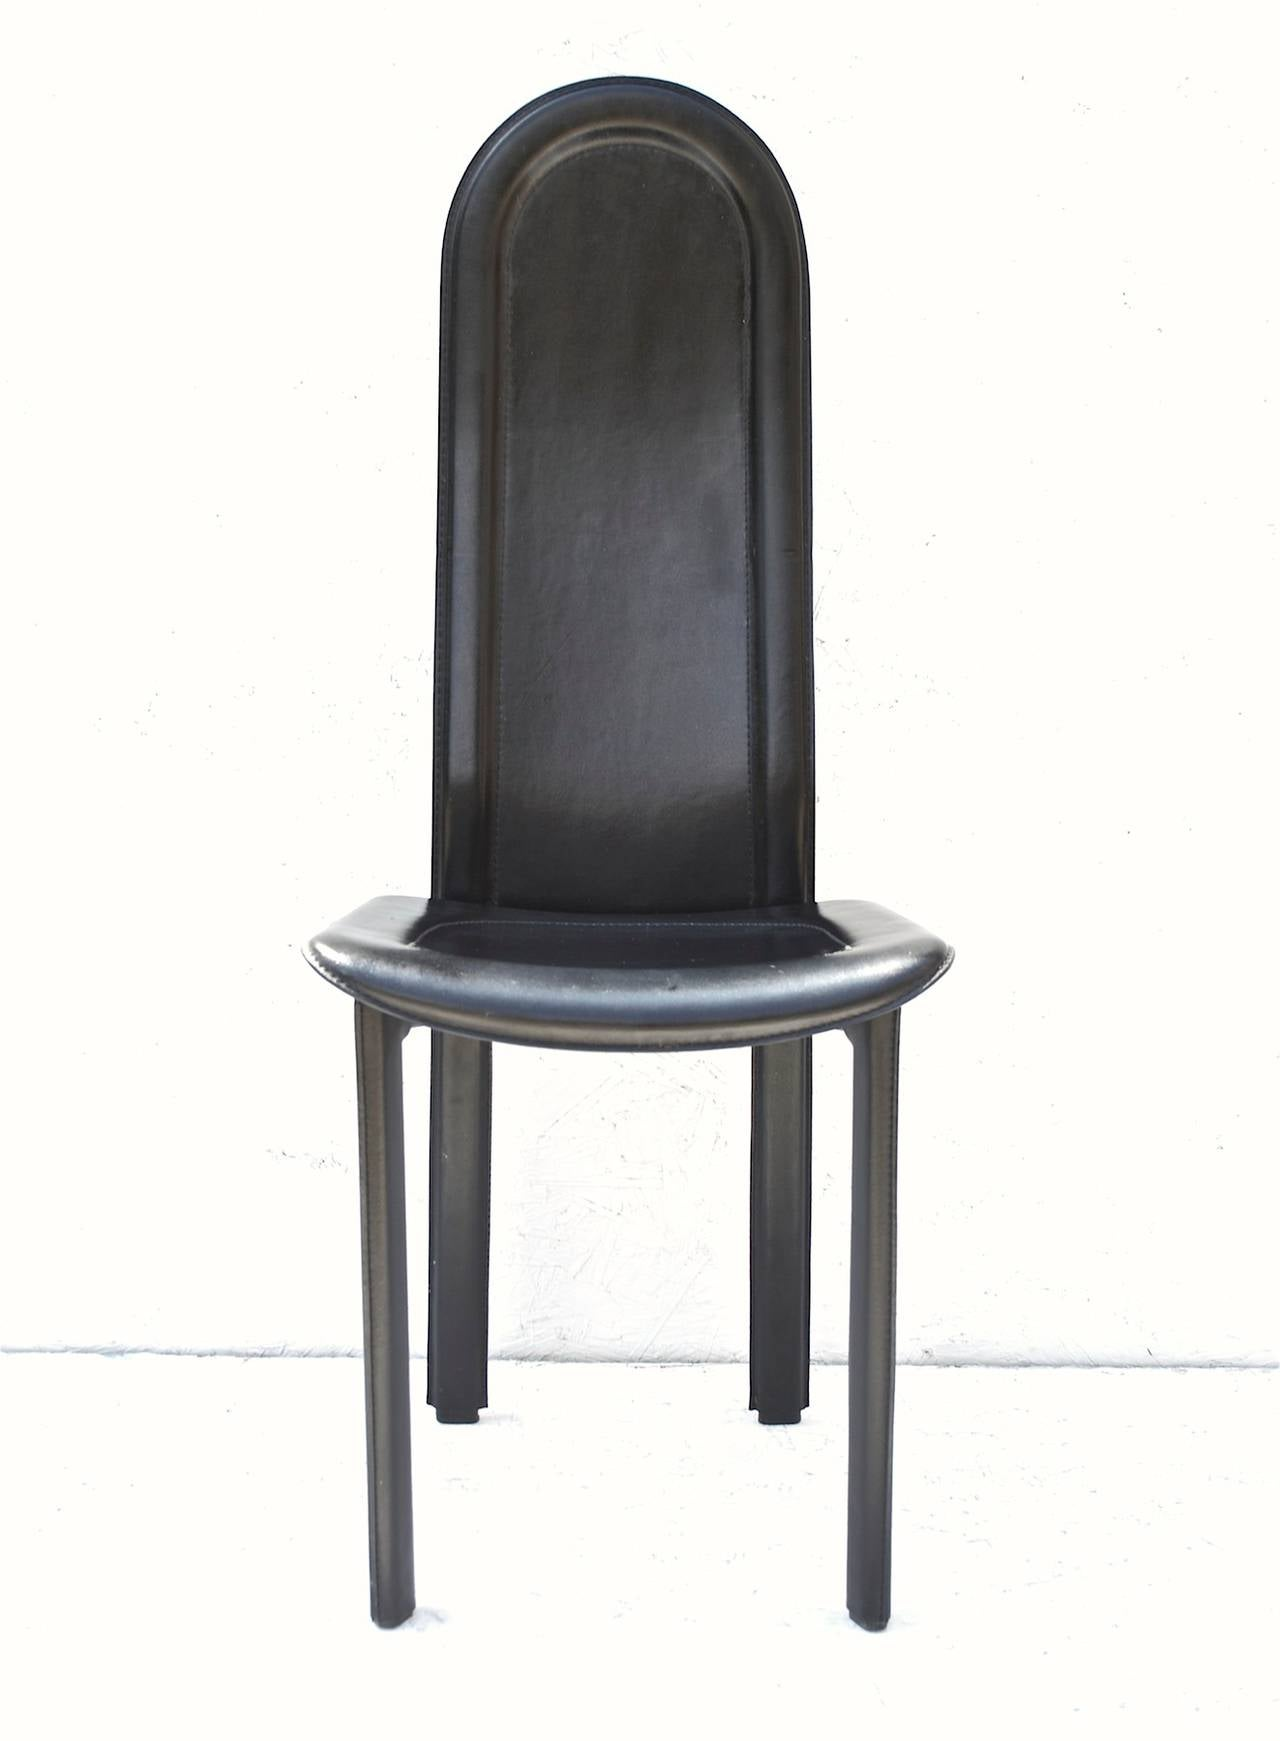 Black Leather Dining Chairs by Artedi UK For Sale at 1stdibs : Artedi8l from www.1stdibs.com size 1280 x 1741 jpeg 79kB